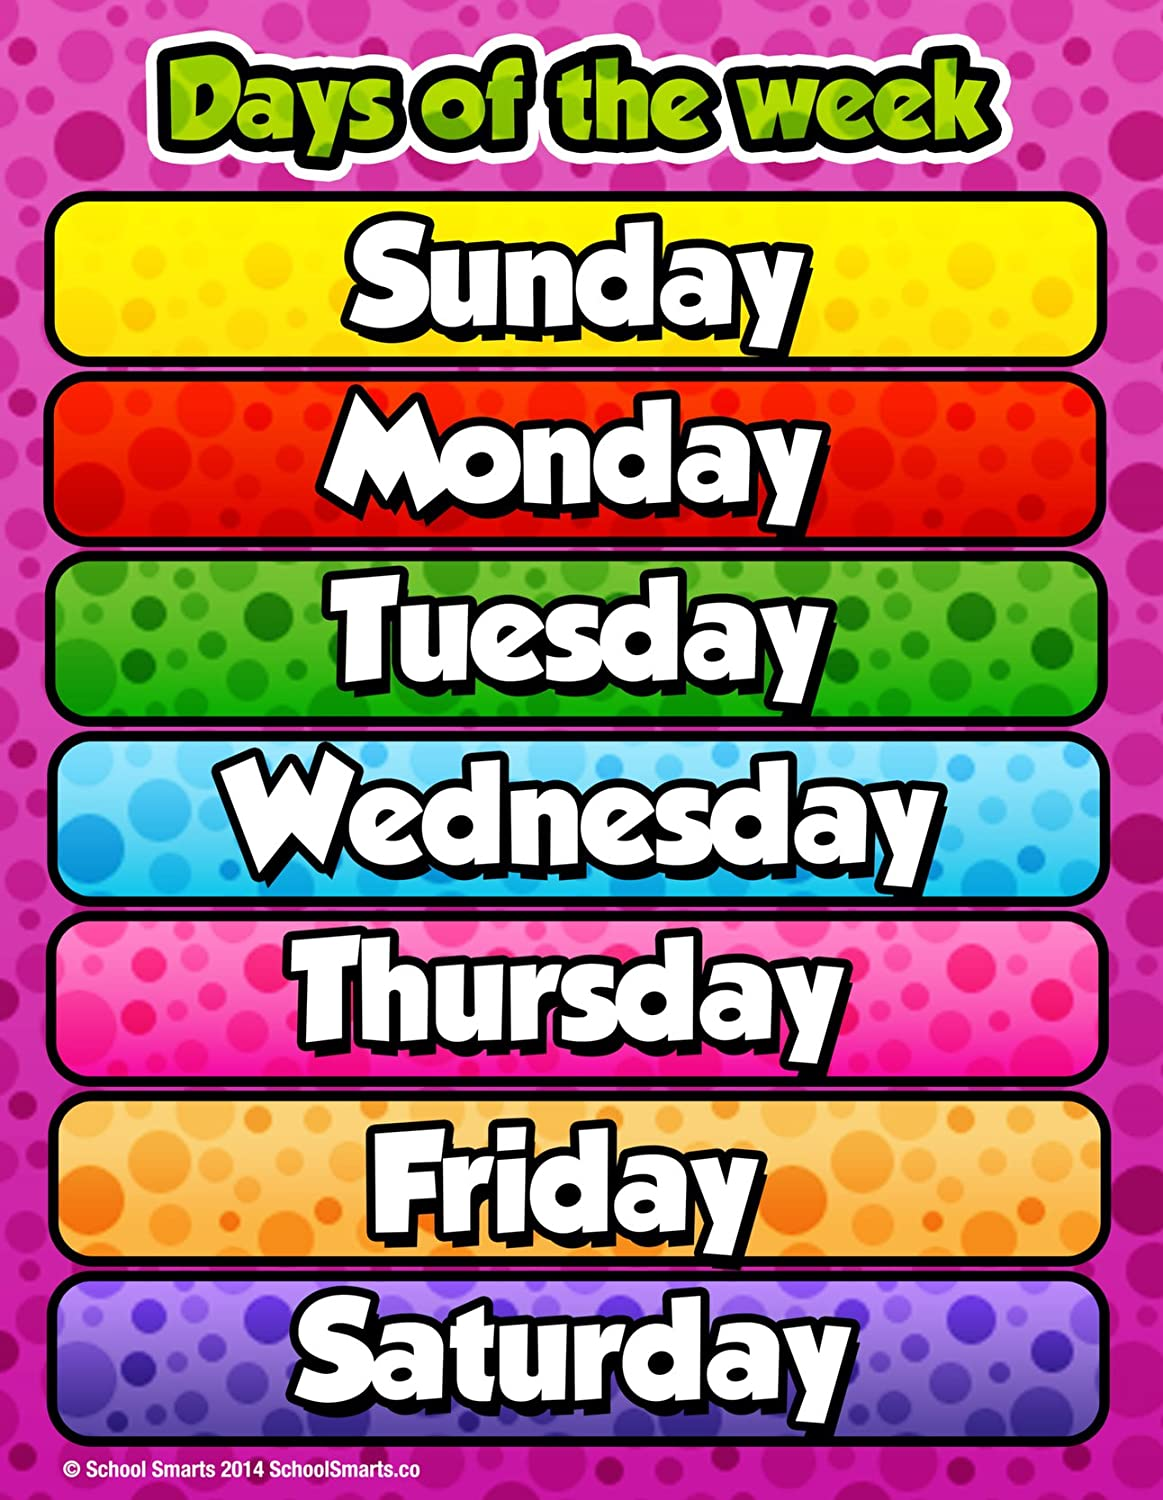 Amazon.com: Days of the Week Poster for Home and Classroom by School Smarts  | Fully Laminated Rolled and Sealed for Protection 17X22: Office Products